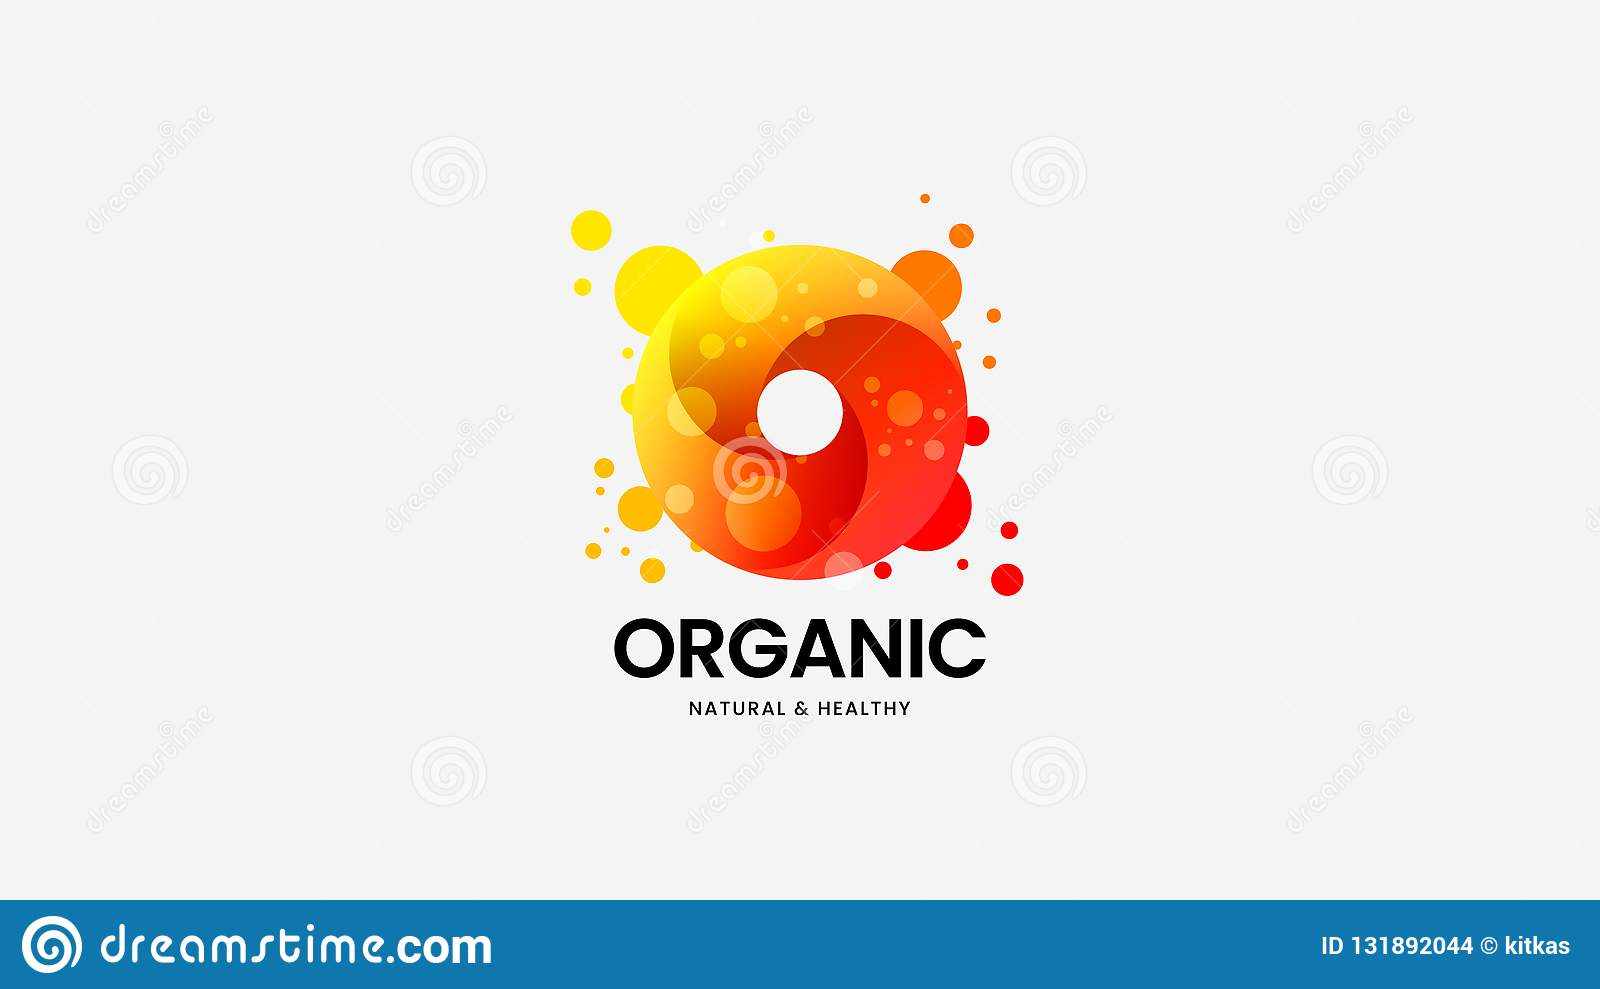 Ring organic vector logo sign for corporate identity. Logotype emblem illustration. Fashion colorful badge design layout.